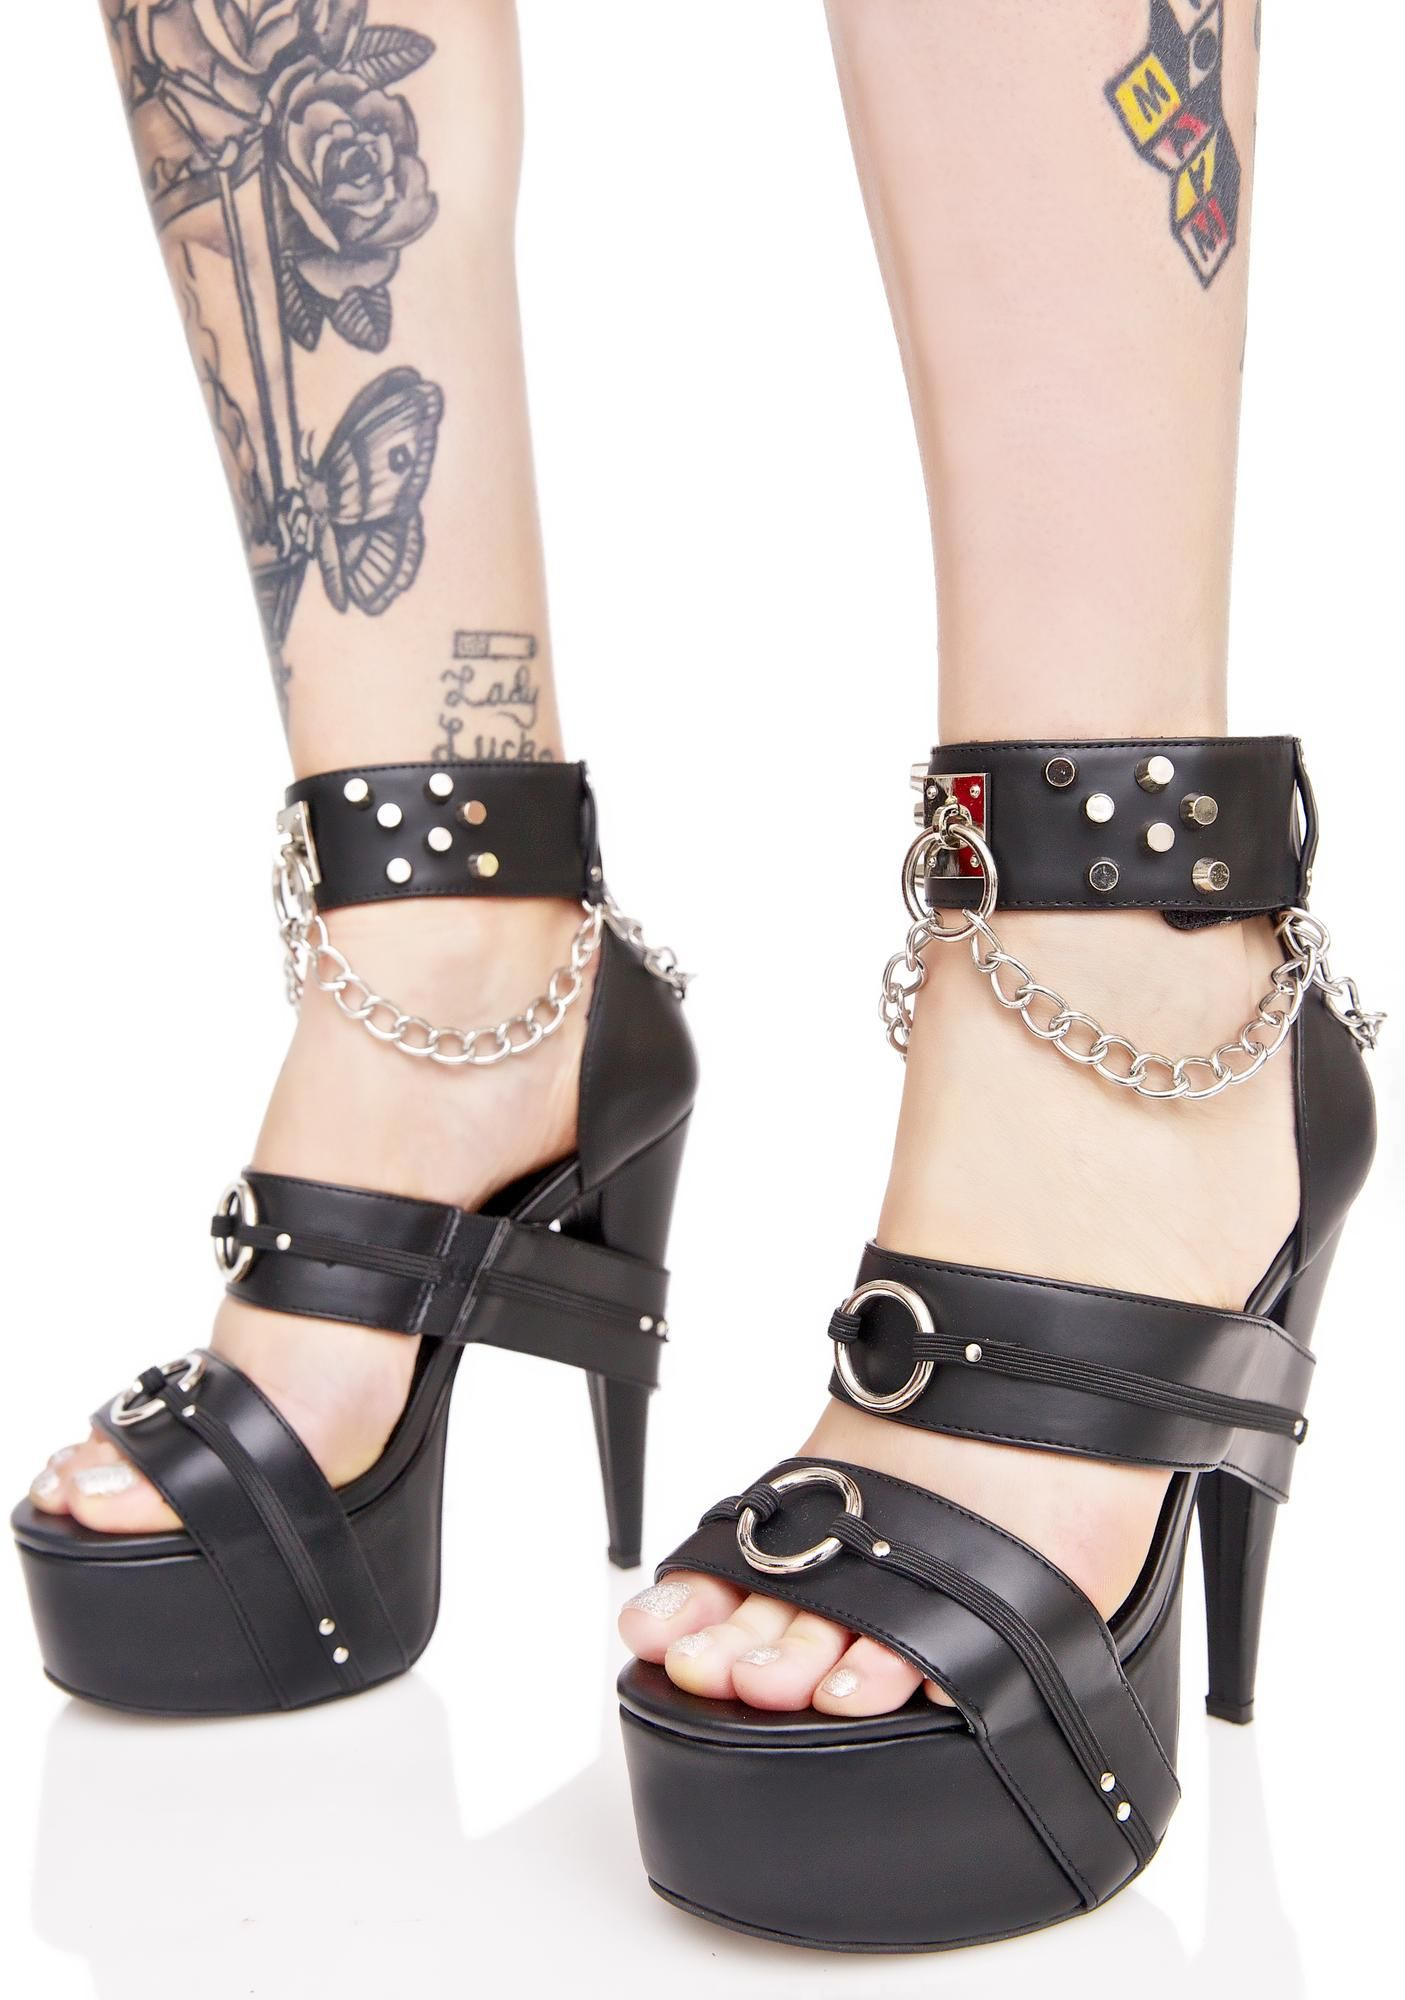 Current Mood Soma Heels cuz yer a regular at tha venue, bb~ These sikk heels feature a smooth black vegan leather construction, open toe, thick strap details with O-ring hardware that wrap around the stiletto heelz 'N platform, flat-top studs dotting the ankle strap, and drippy silver chains hanging off a centered O-ring.